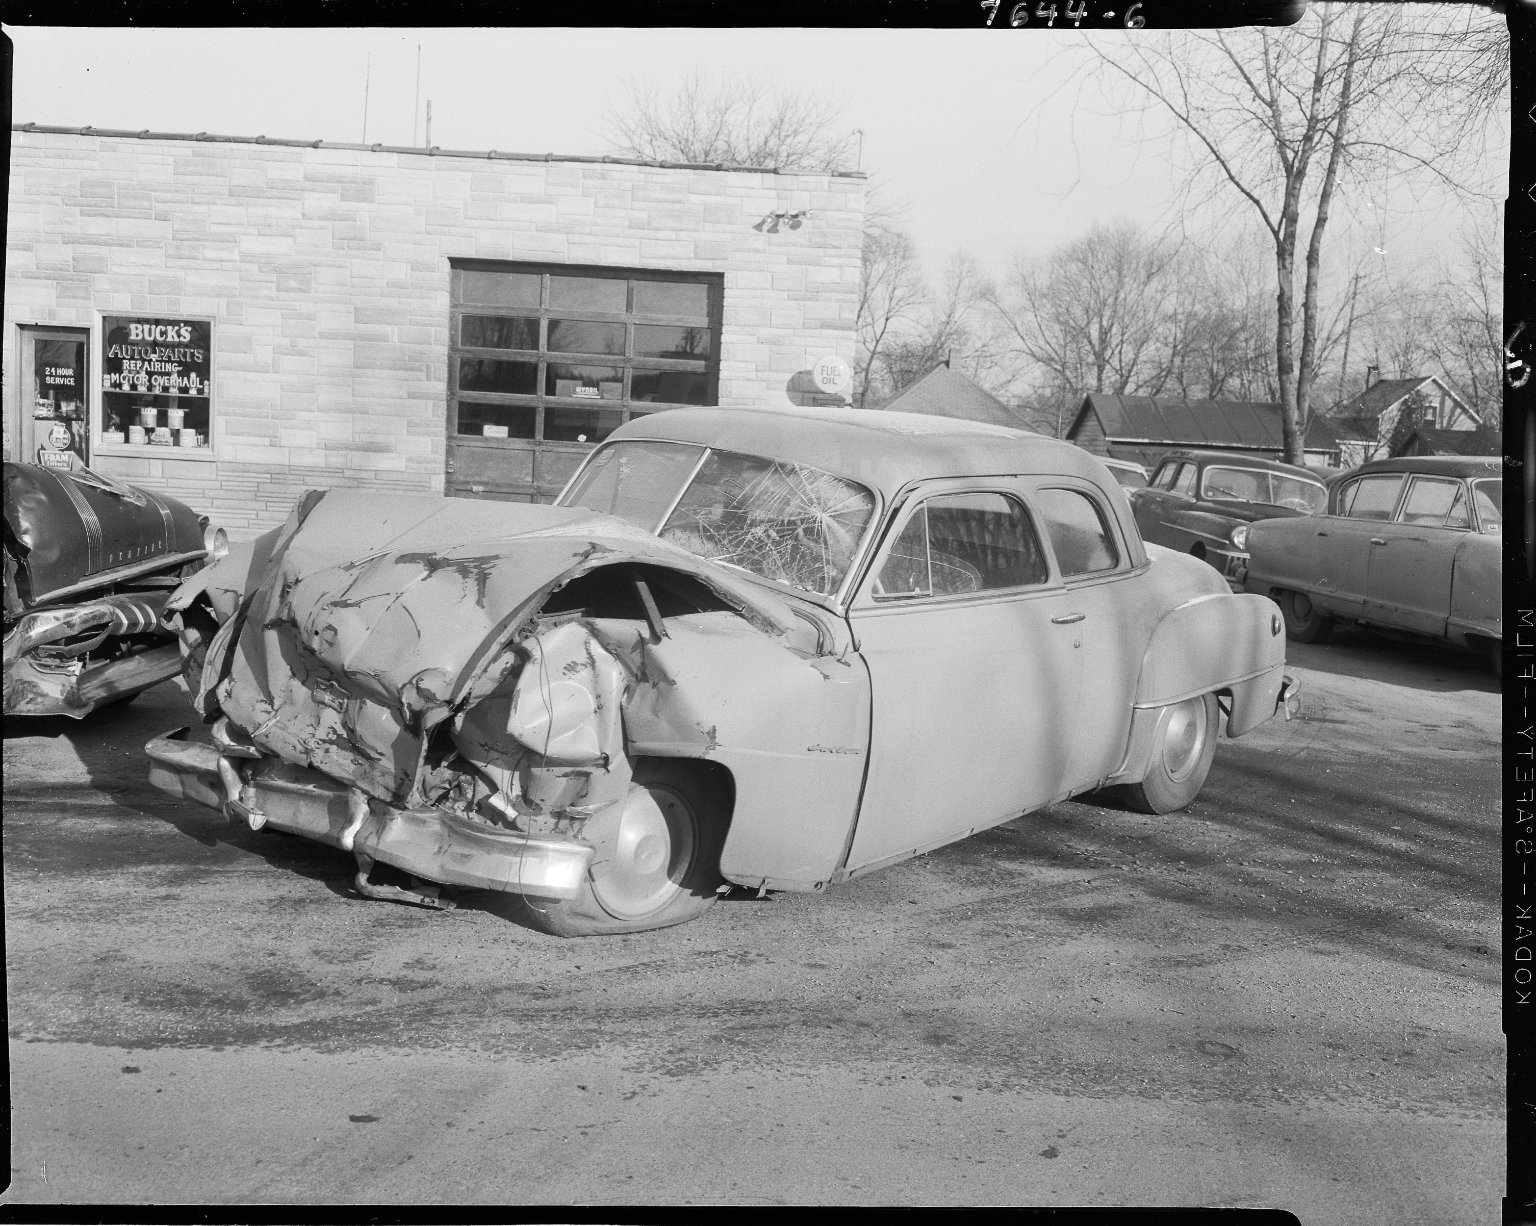 Oldsmobile Futuramic car, after accident, at Buck's Auto Parts